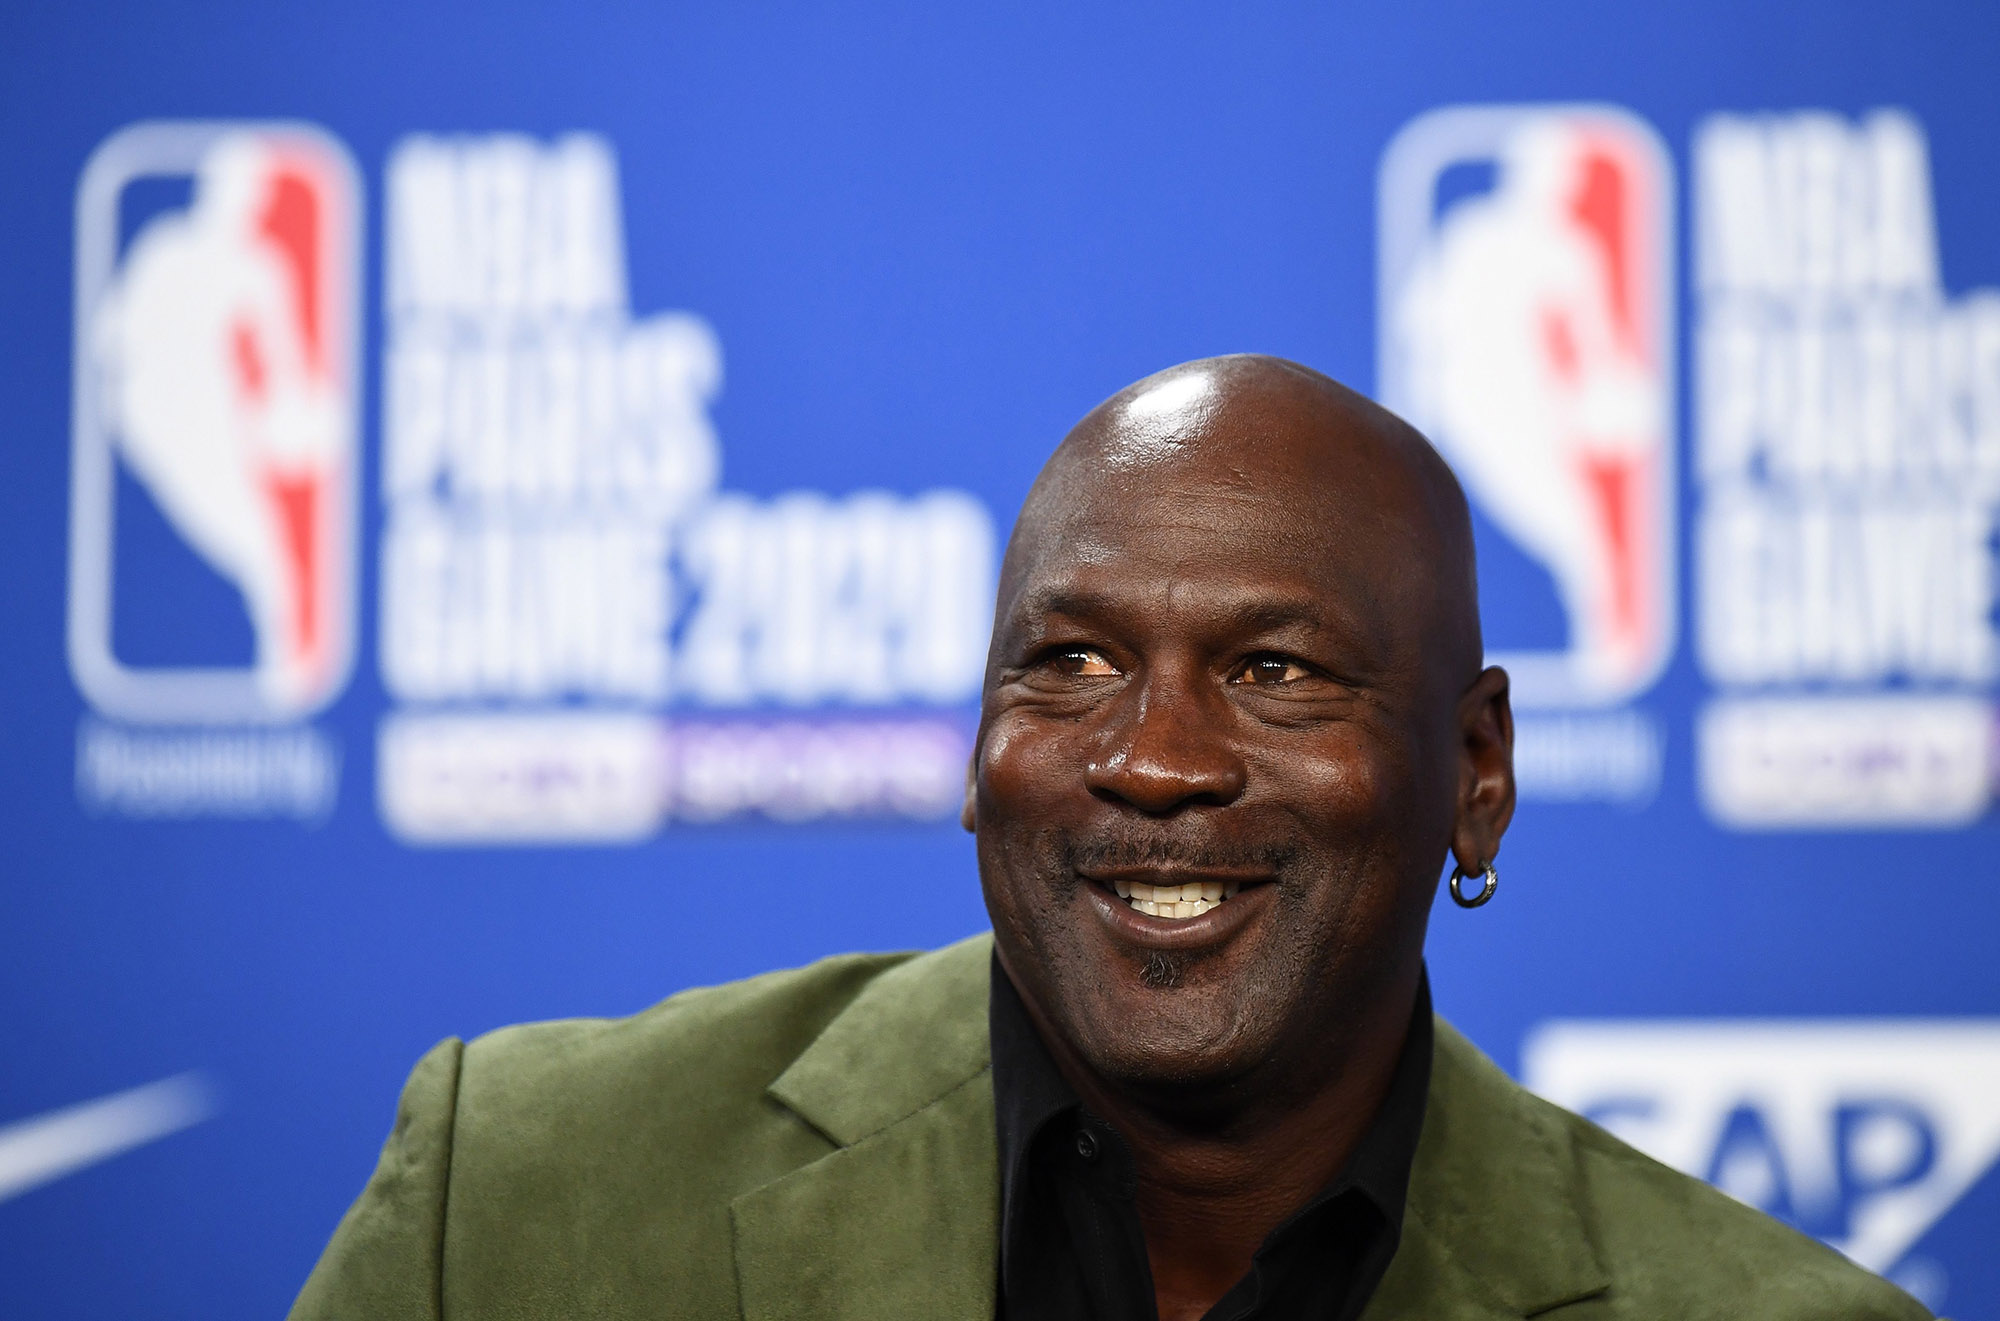 Michael Jordan donates $2 million from hit documentary to feed America's hungry